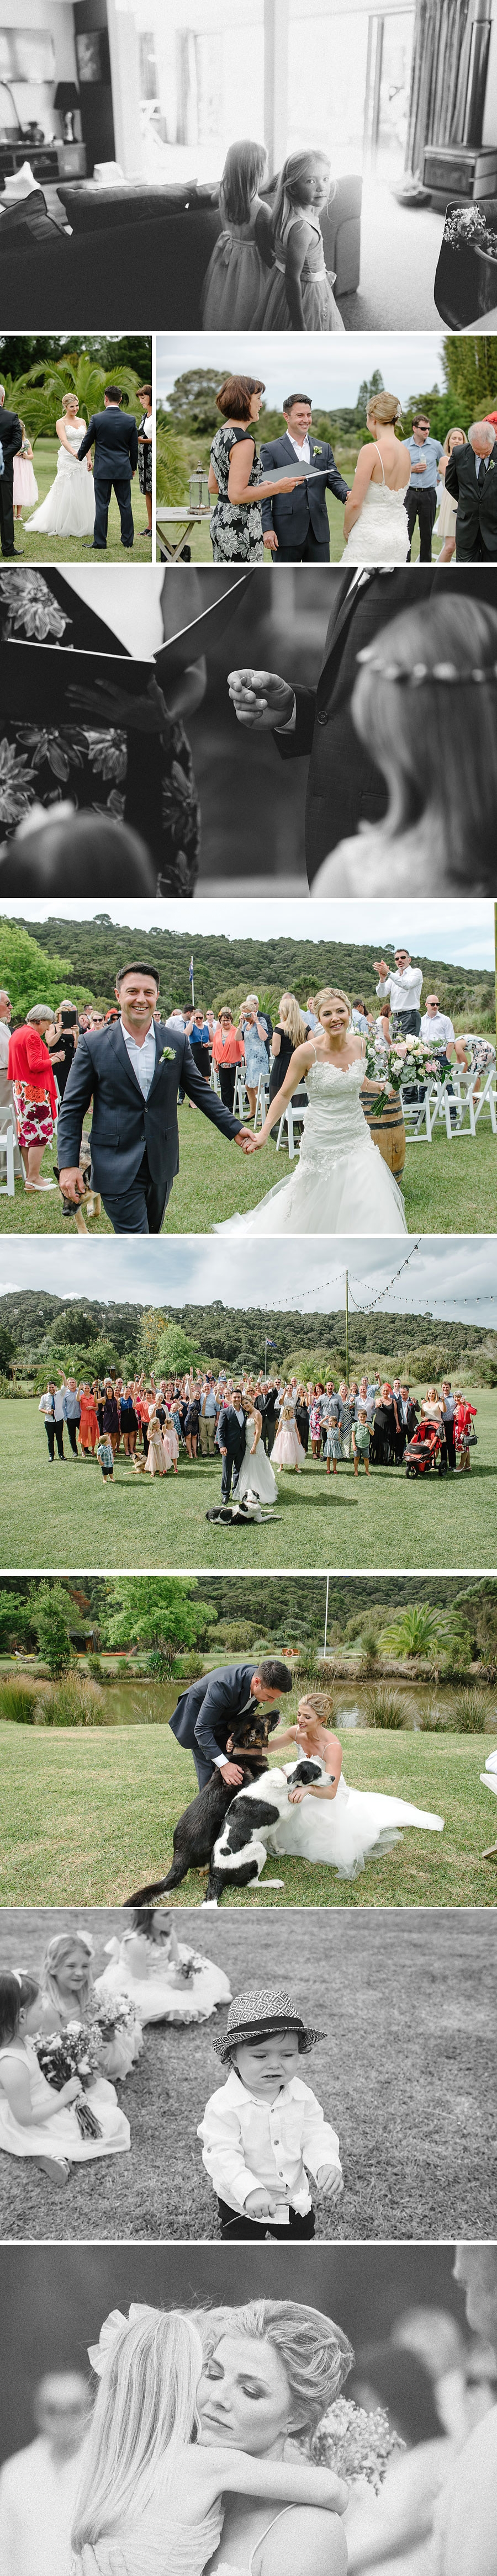 New Zealand Wedding Photographer Jess Burges